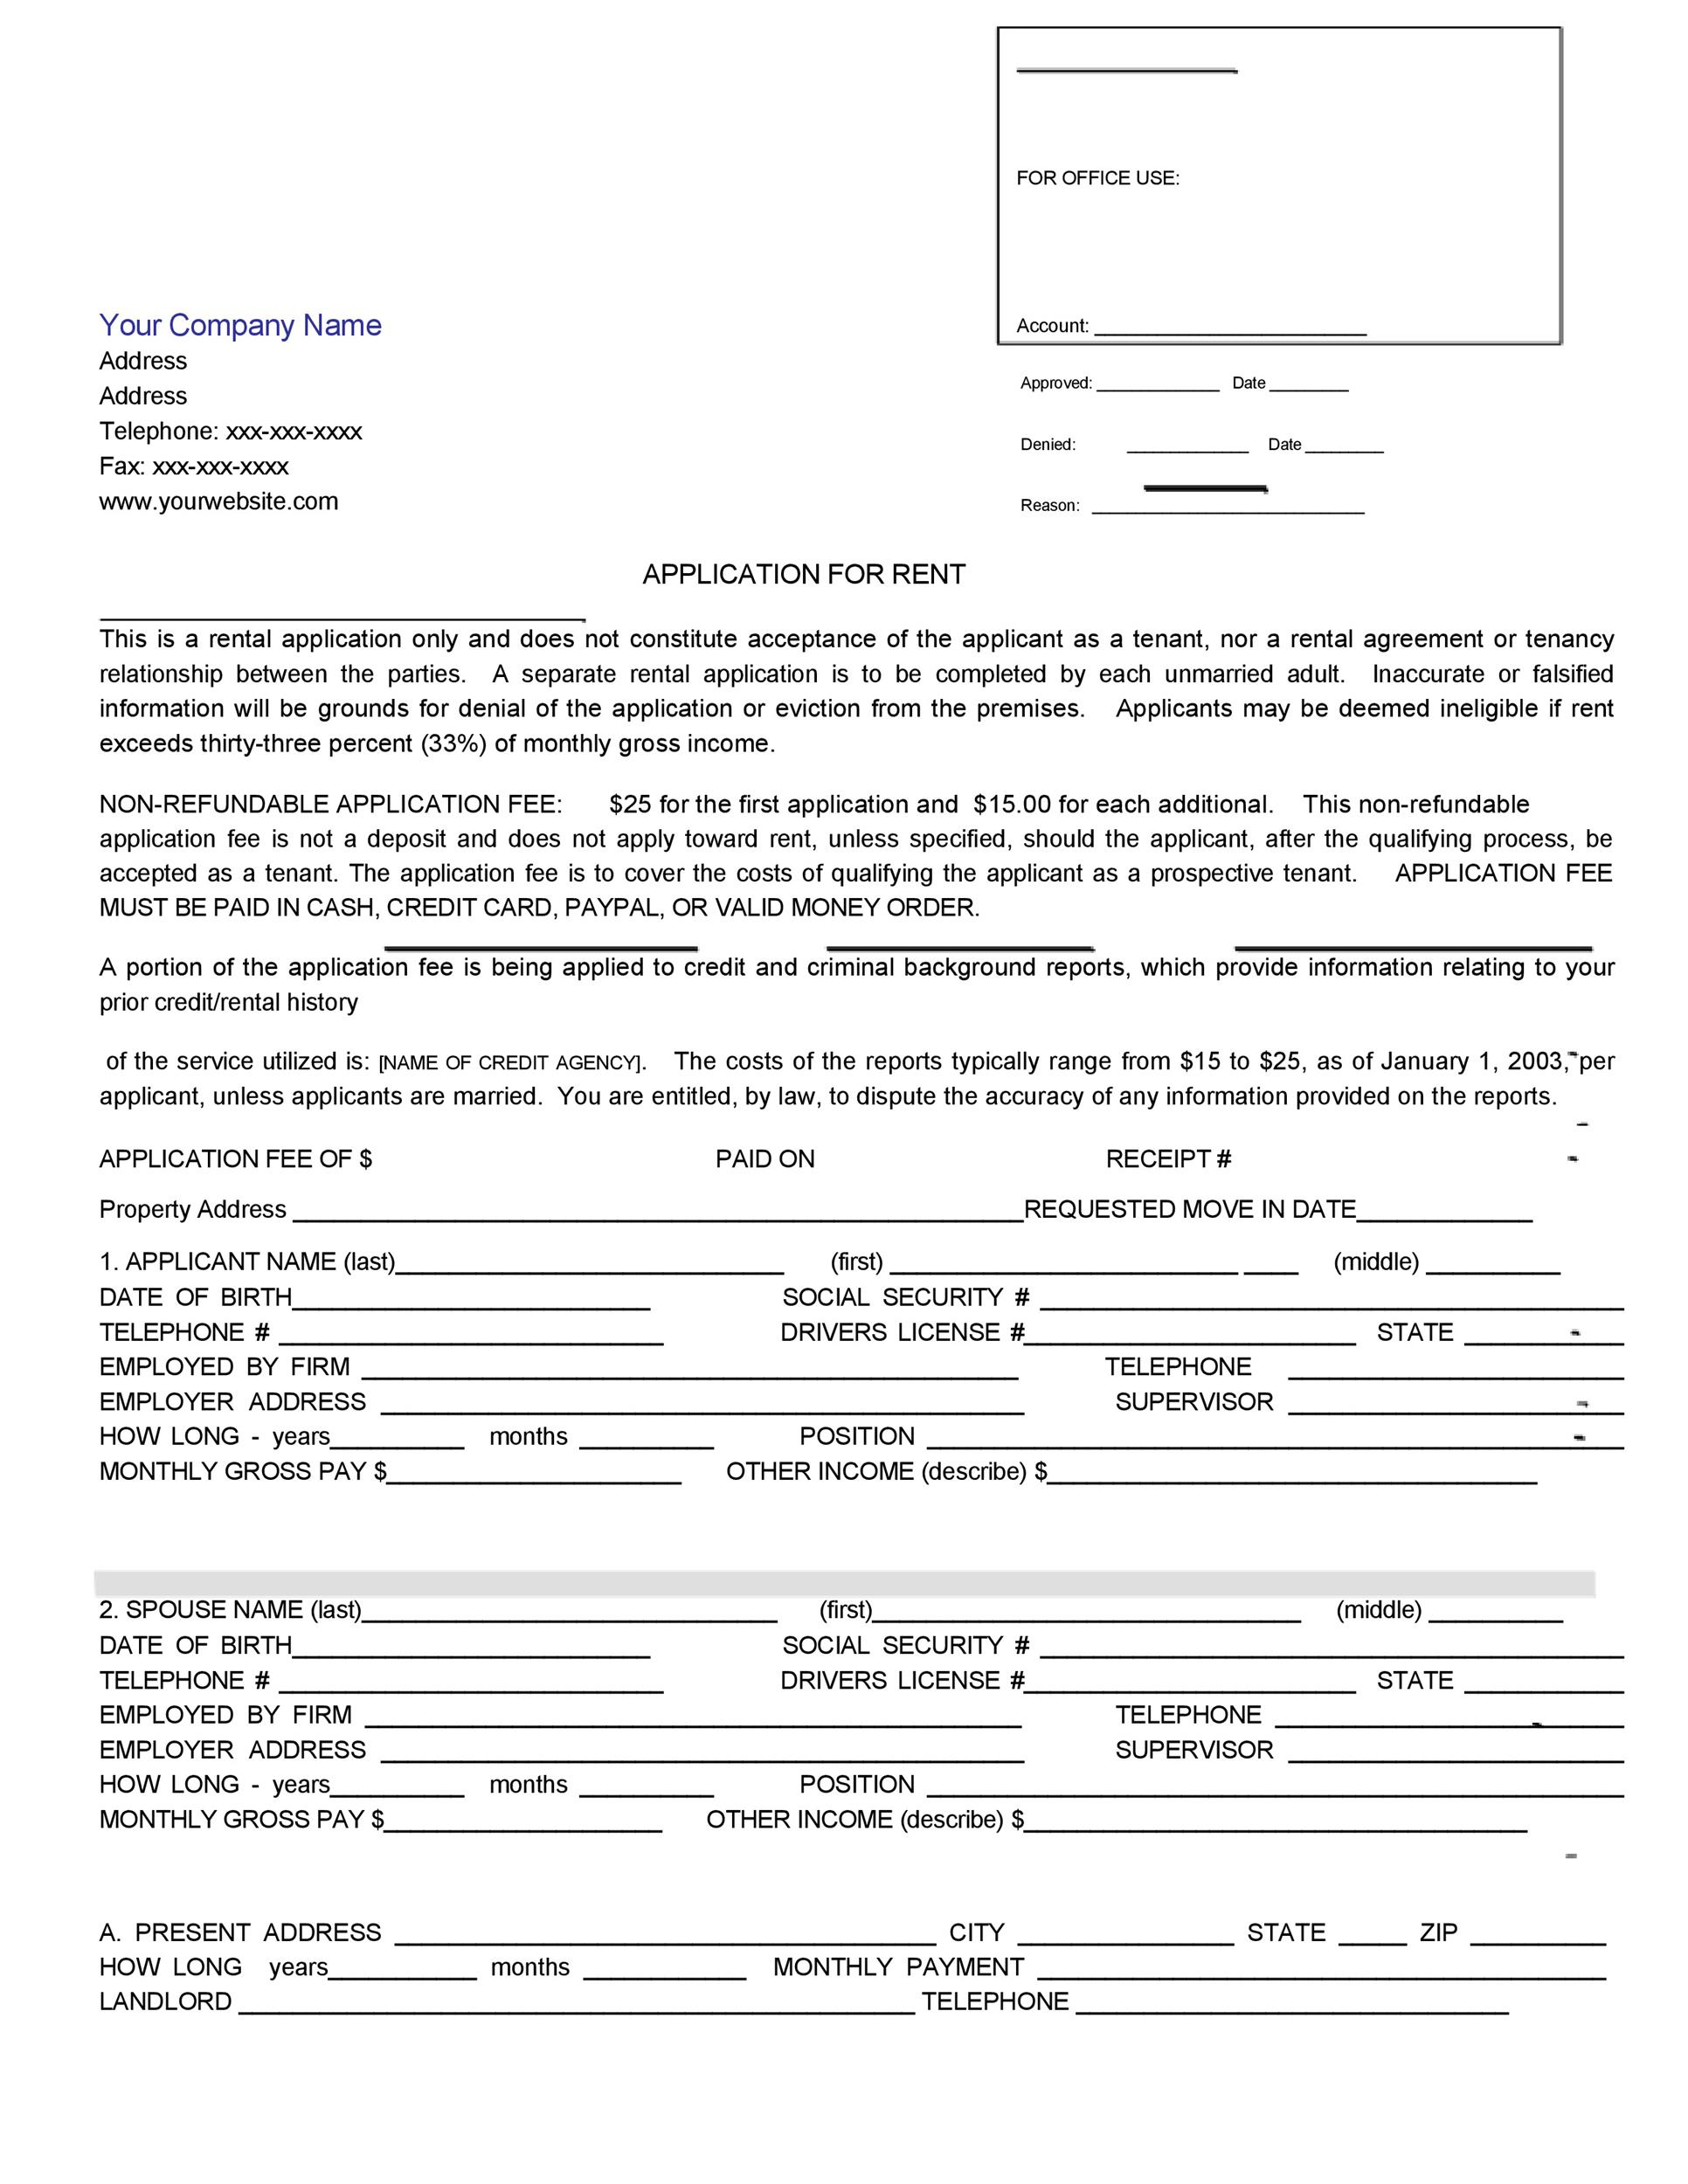 Simple Commercial Lease Agreement Template  Create Professional